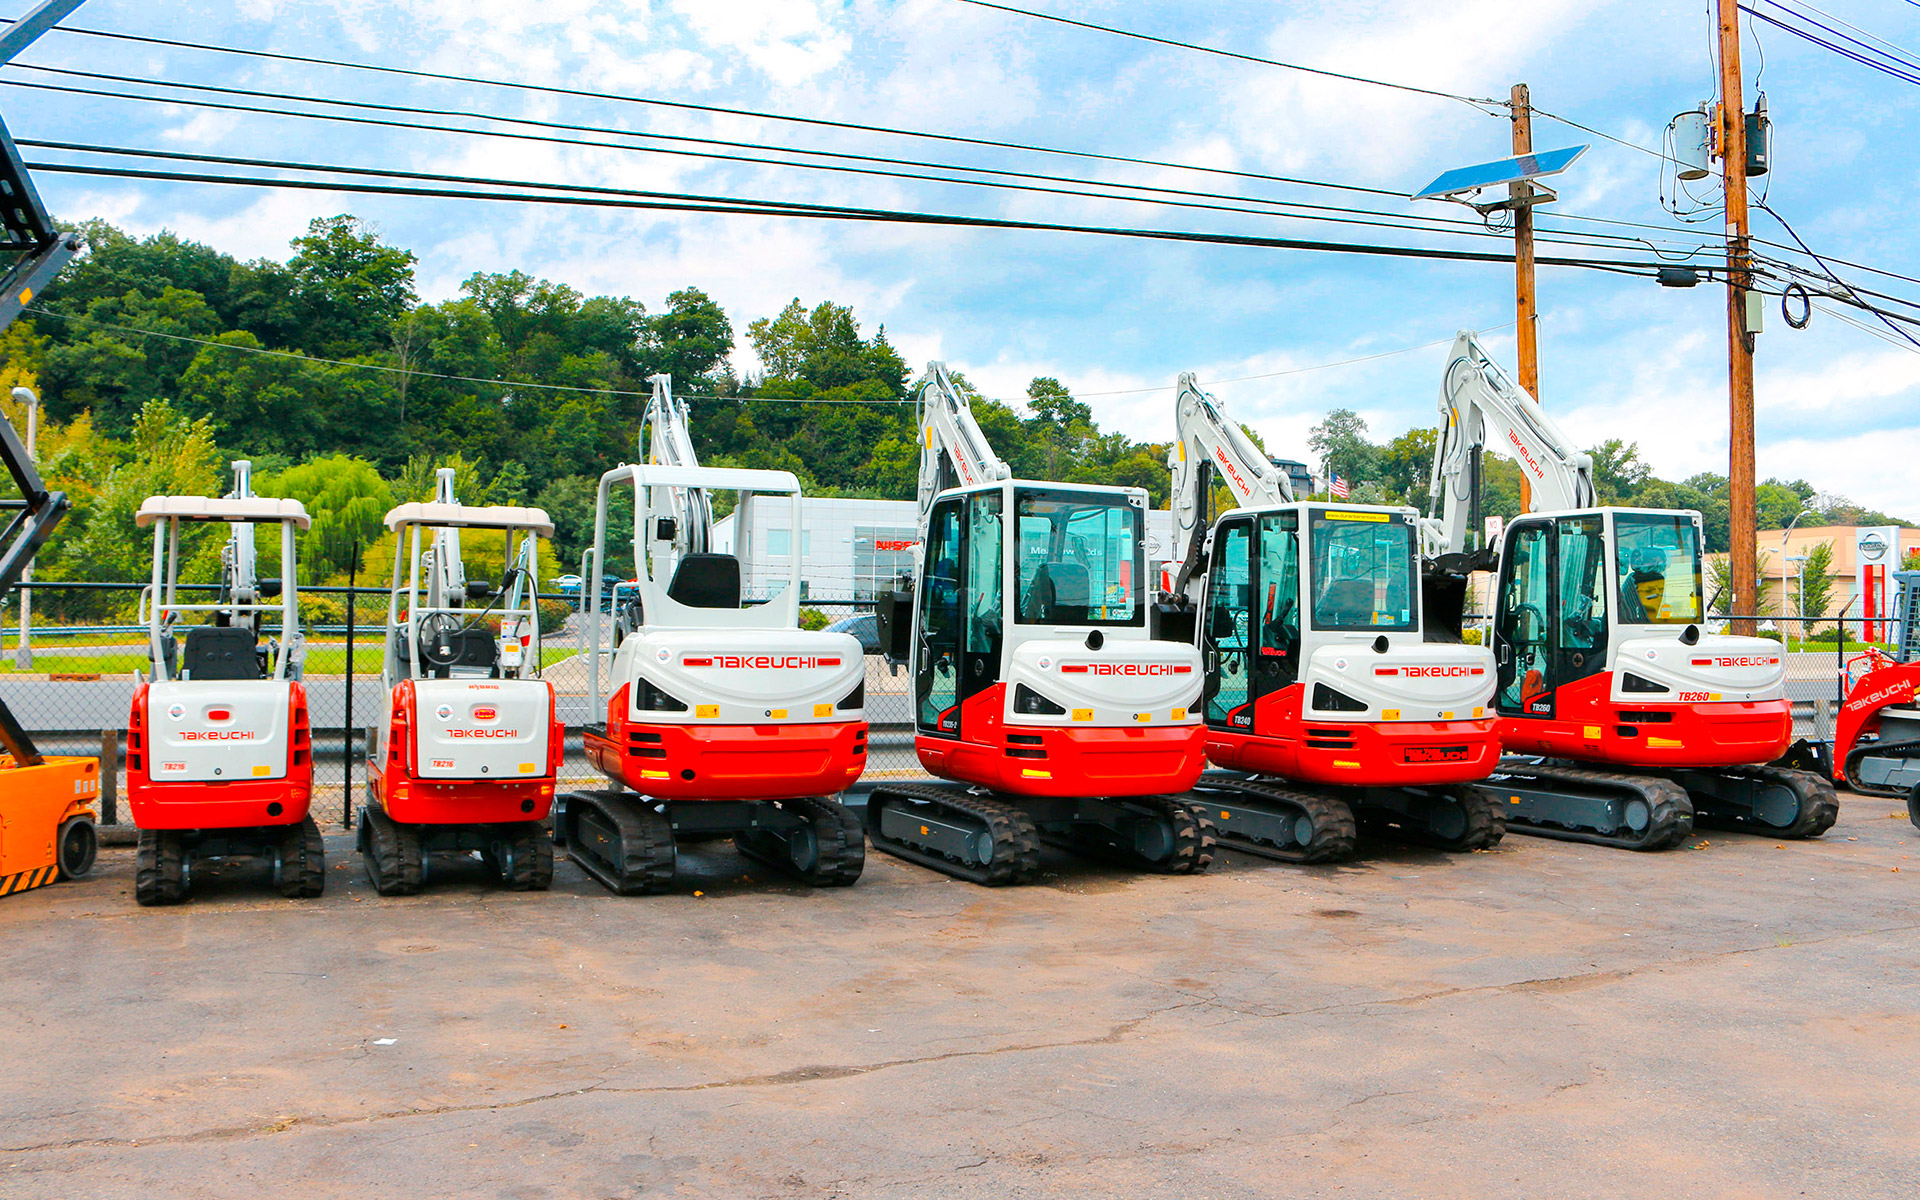 Row of Takeuchi Excavators small to big